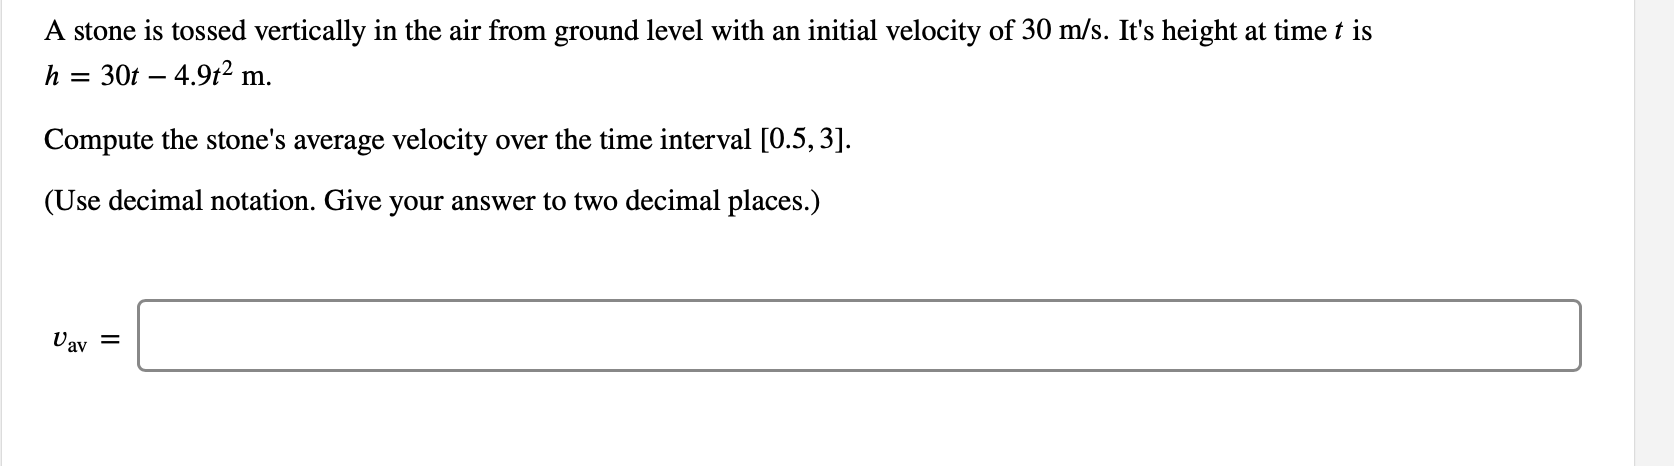 A stone is tossed vertically in the air from ground level with an initial velocity of 30 m/s. It's height at time t is 30t 4.92 m h Compute the stone's average velocity over the time interval [0.5,3]. (Use decimal notation. Give your answer to two decimal places.) Uav